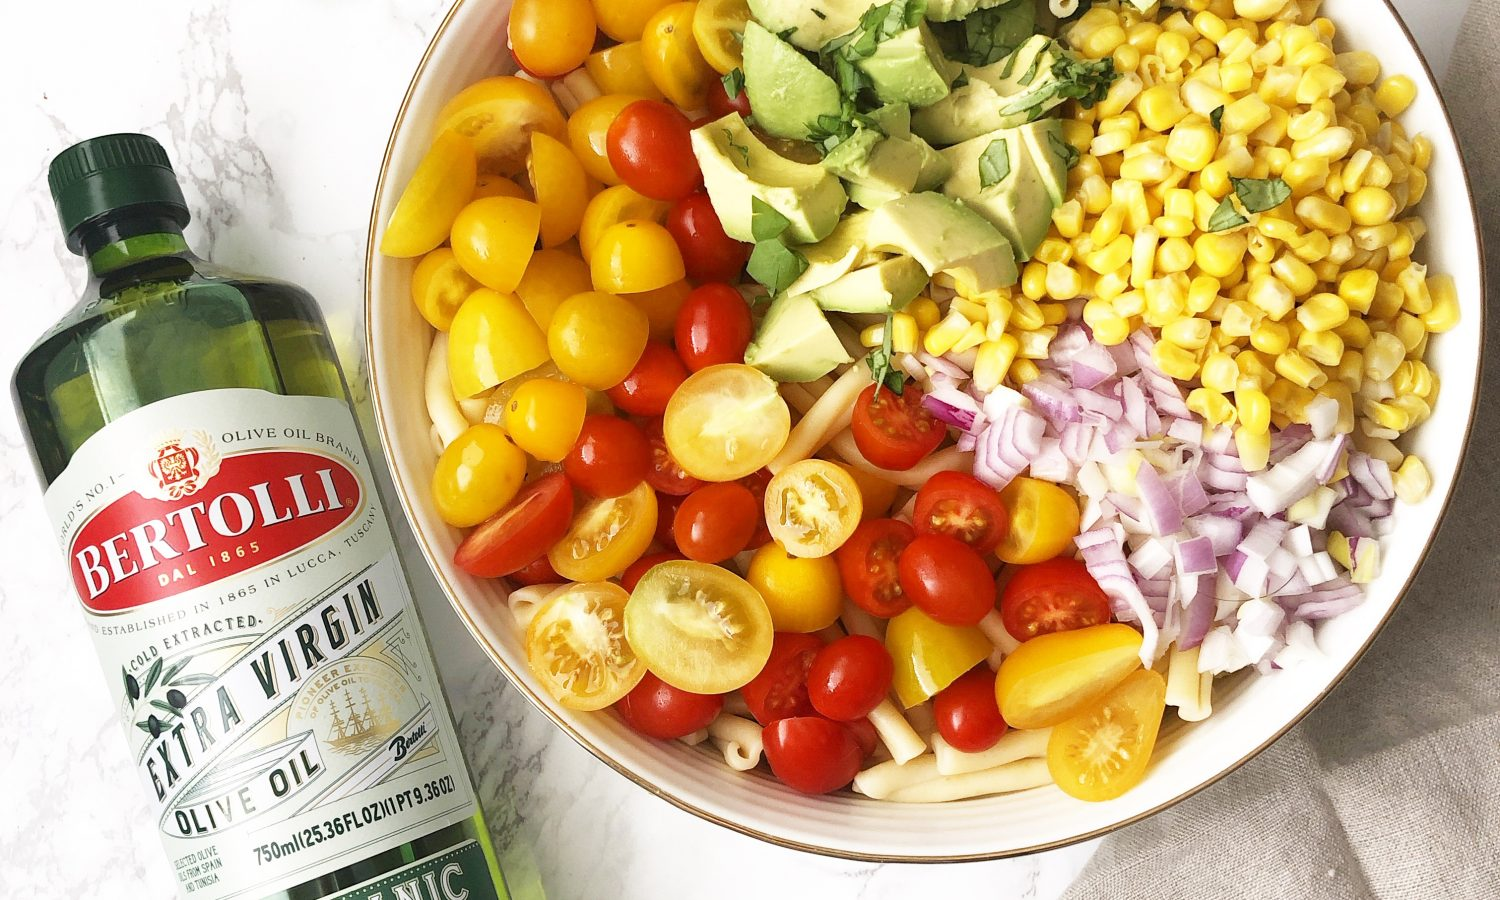 Bertolli Extra Virgin Olive Oil with Avocado Pasta Salad